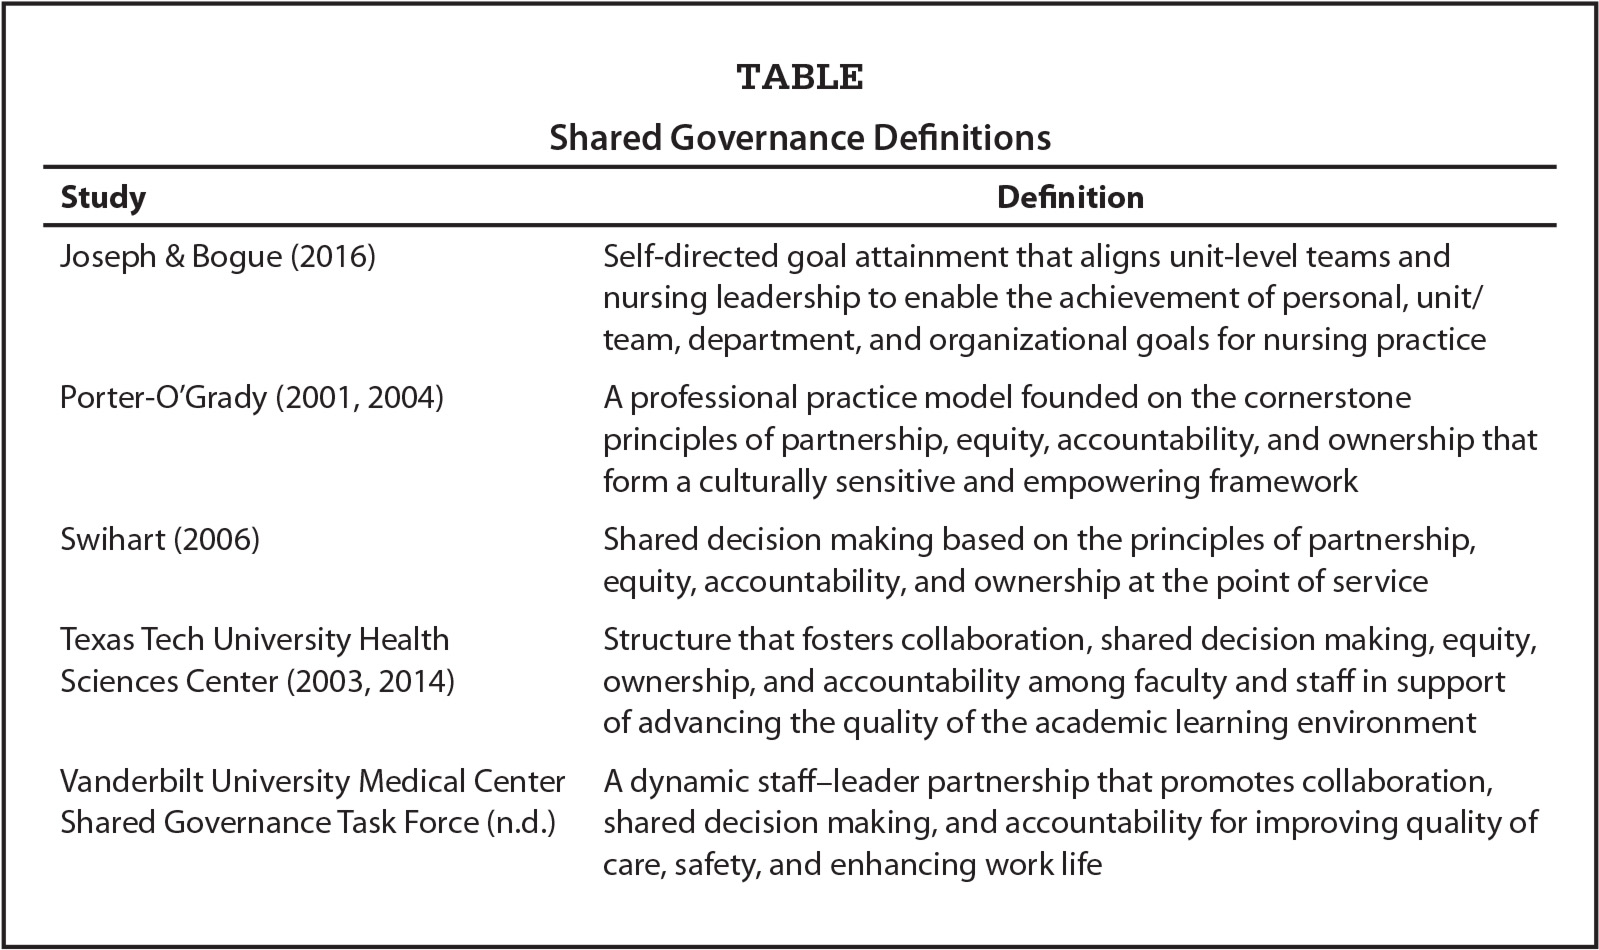 Shared Governance Definitions